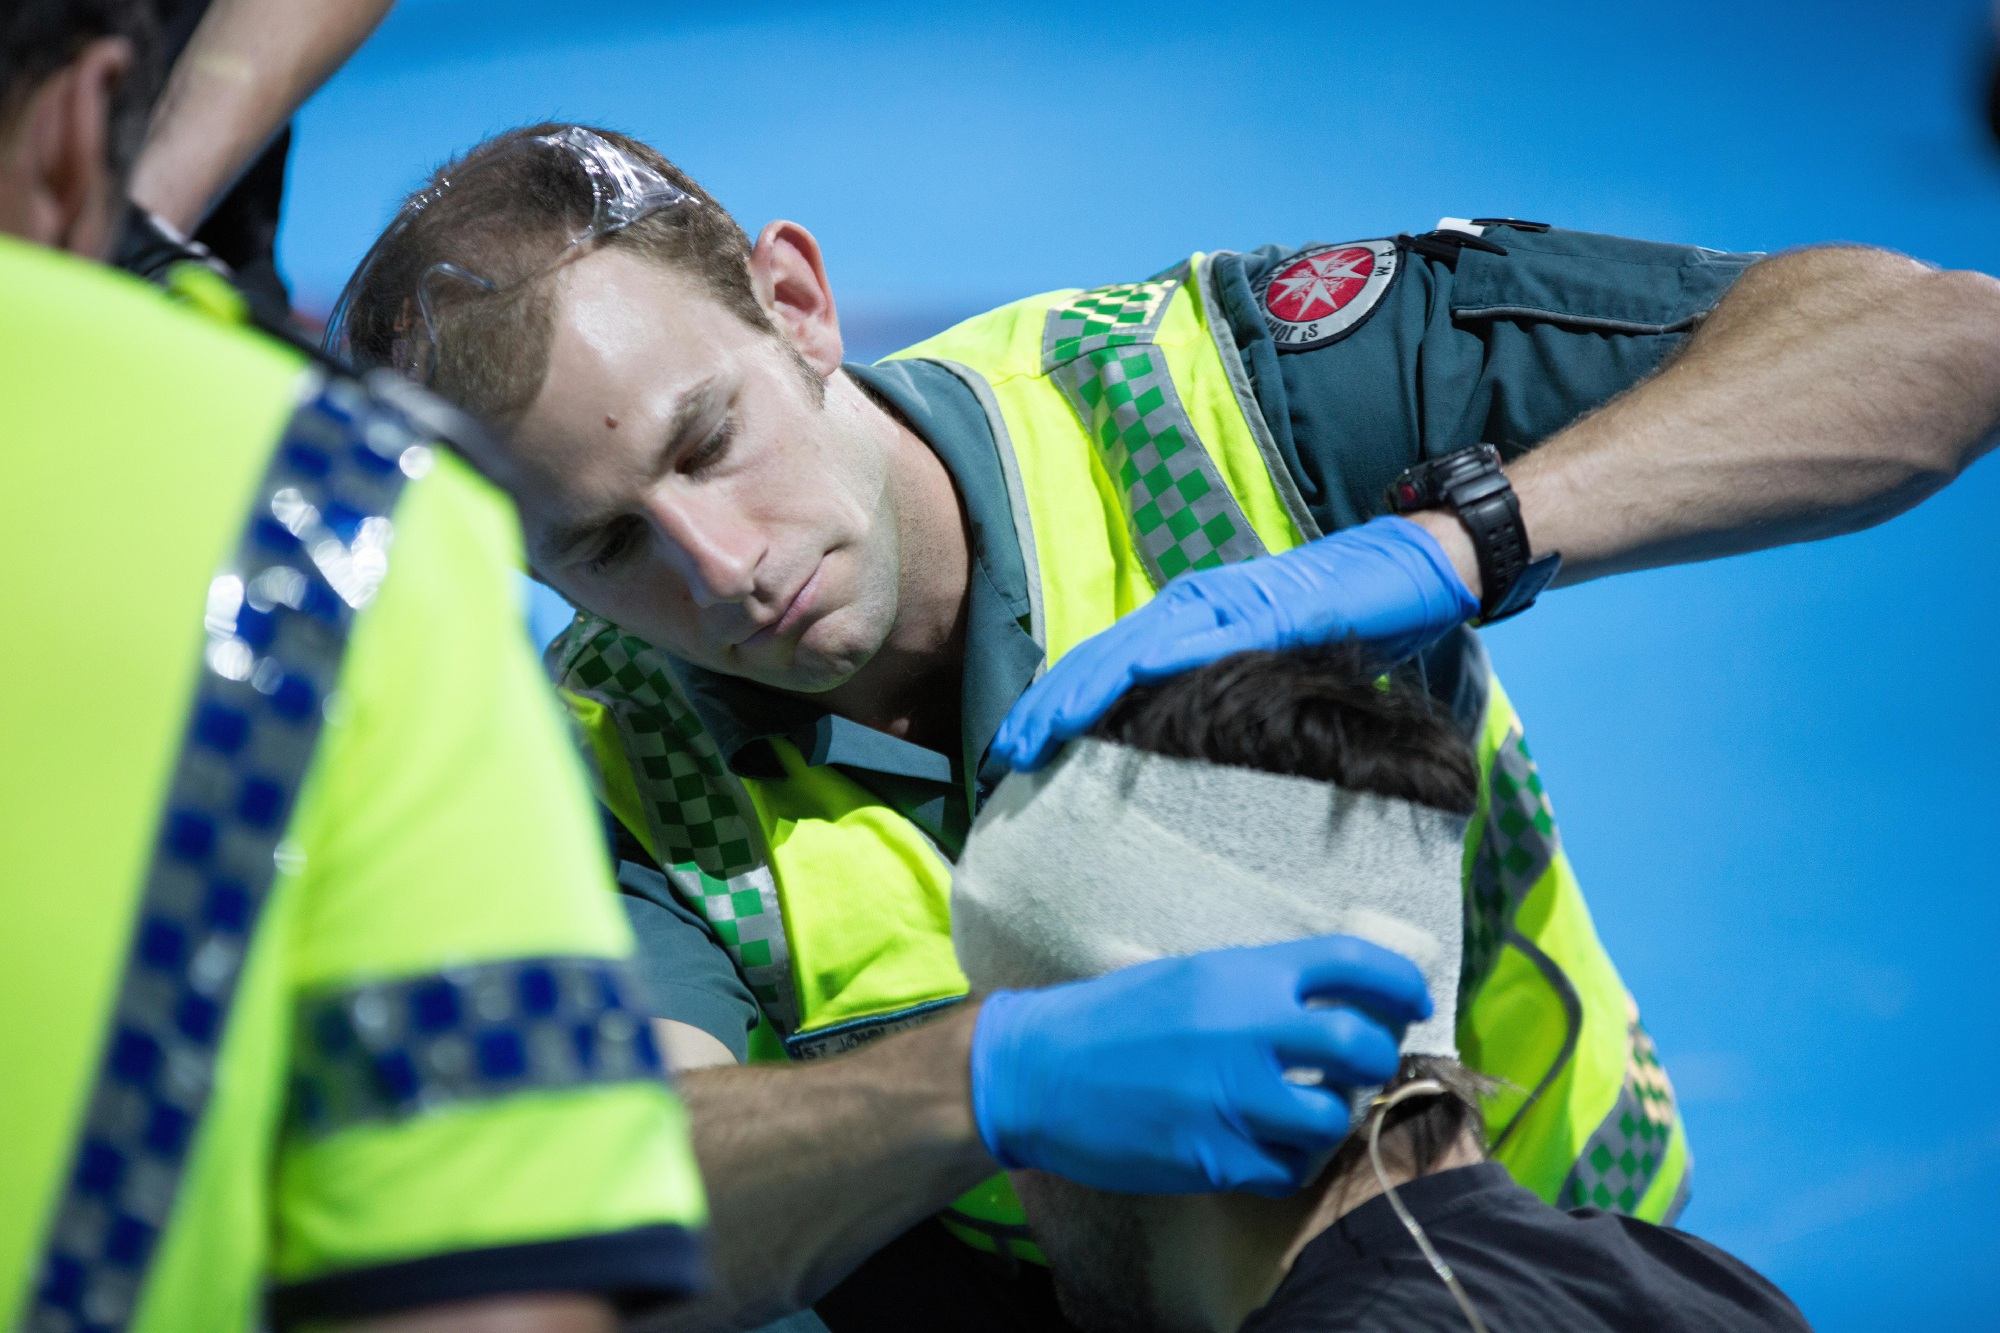 St John Ambulance WA paramedic Sandy Bent attends a 'patient' during a road crash re-enactment at the RAC's bstreetsmart event at Perth Arena. Picture: Glen Knight.